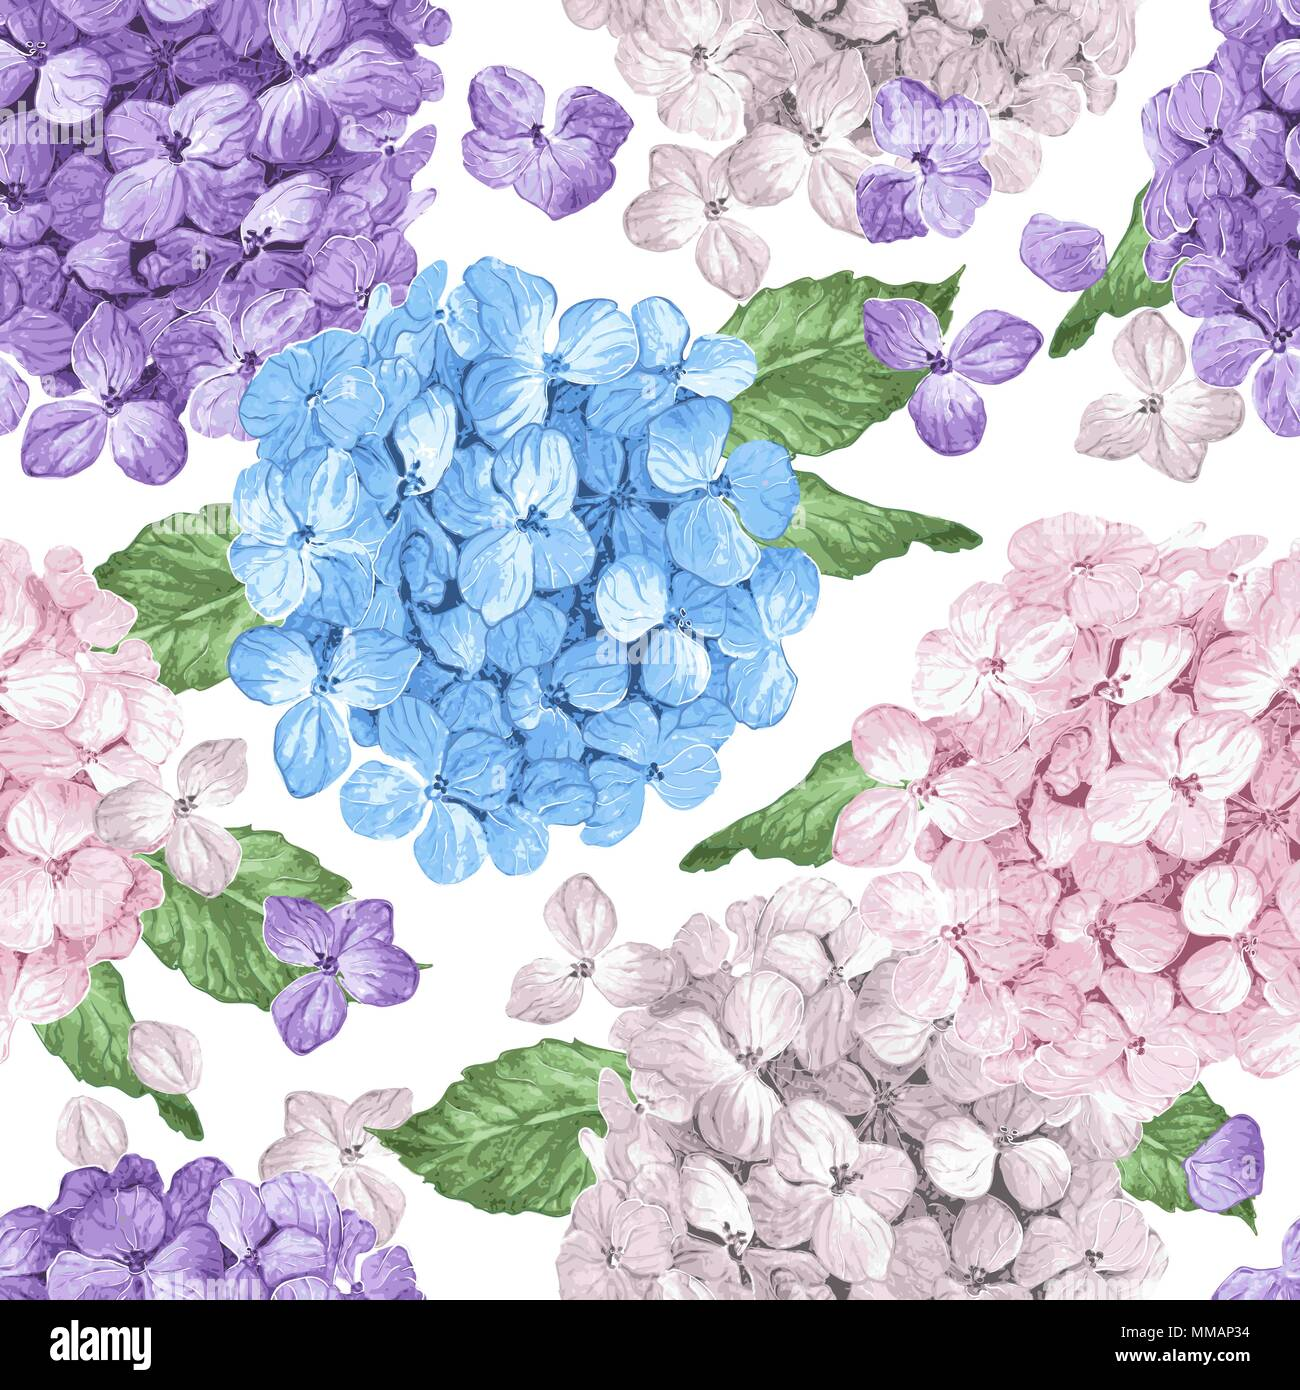 Hydrangea Flowers Petals And Leaves In Watercolor Style On White